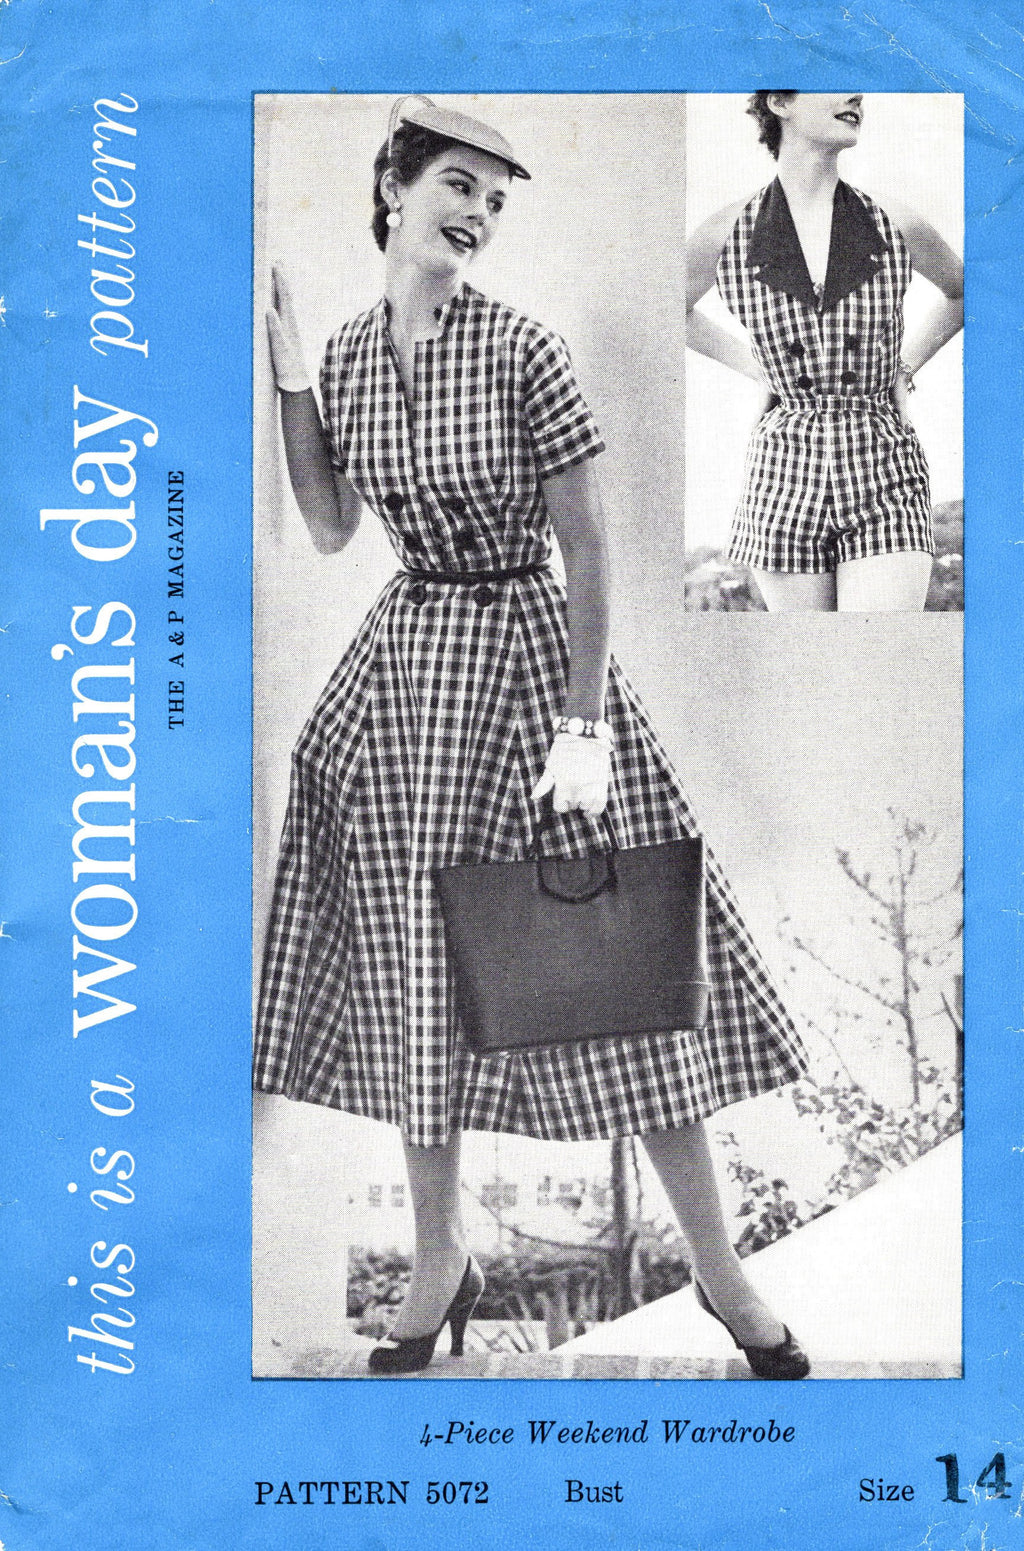 1950s beachwear sewing pattern Woman's Day 5072